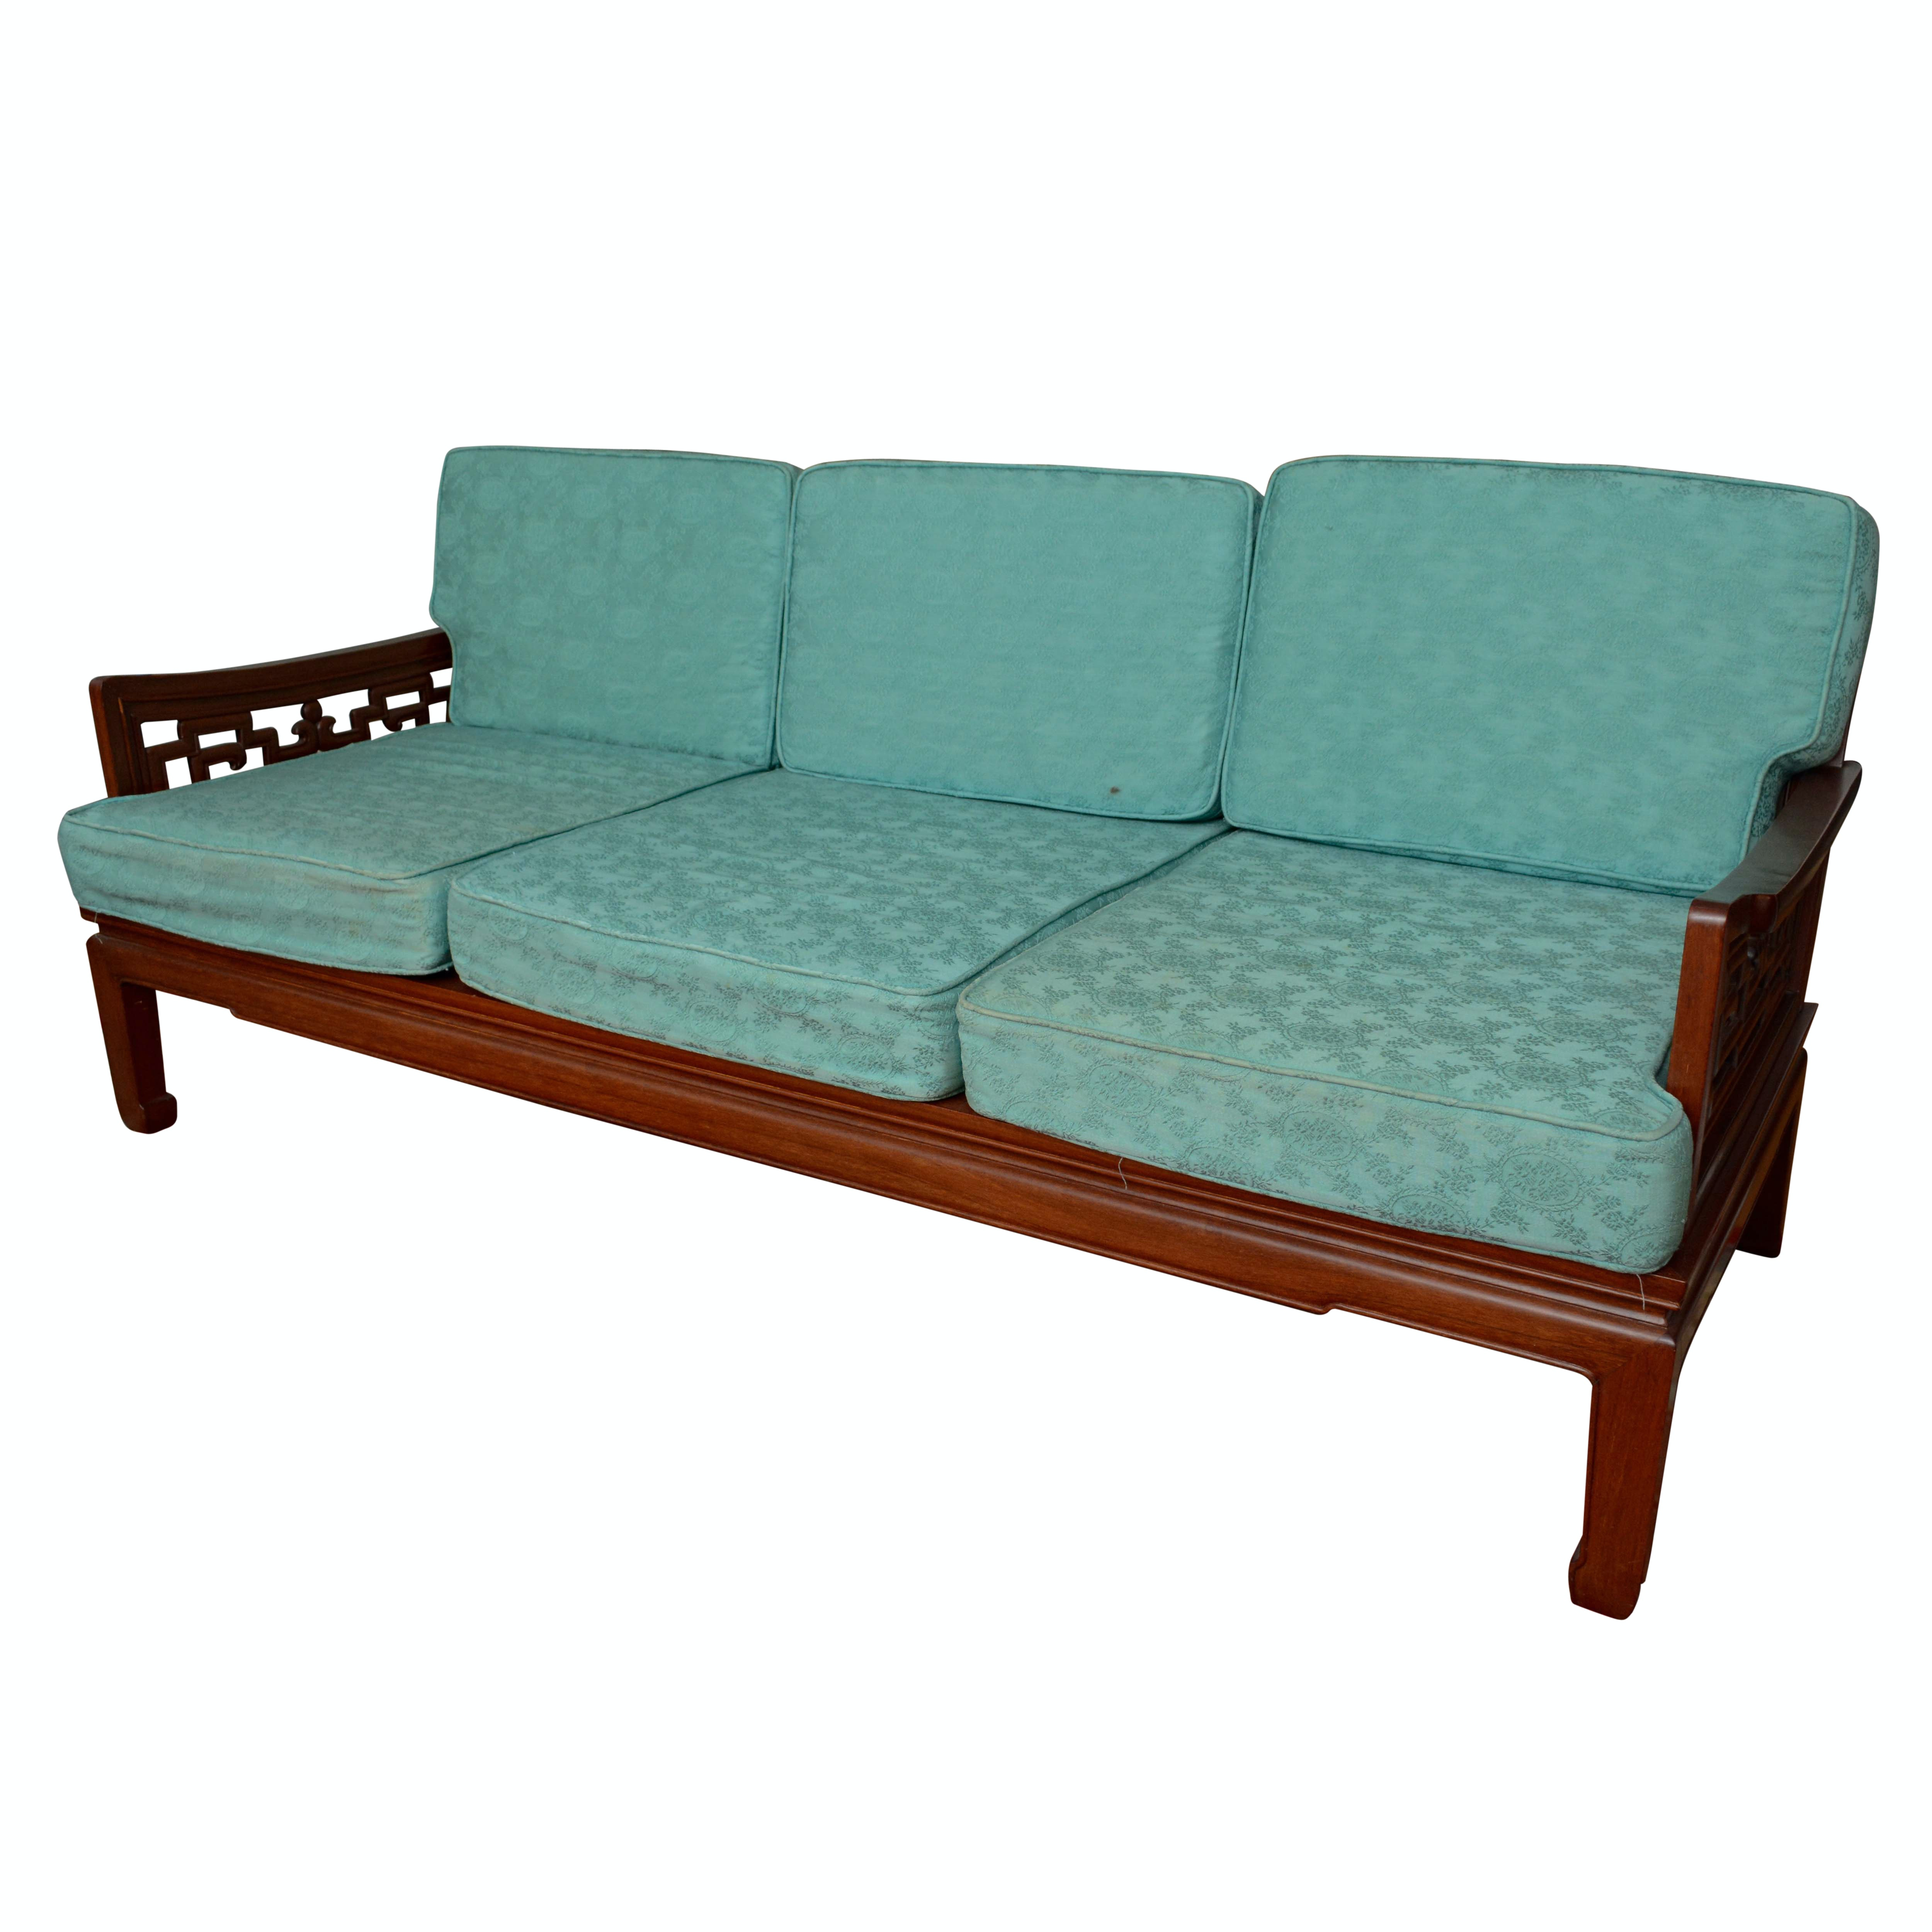 Vintage Chinese Inspired Sofa ...